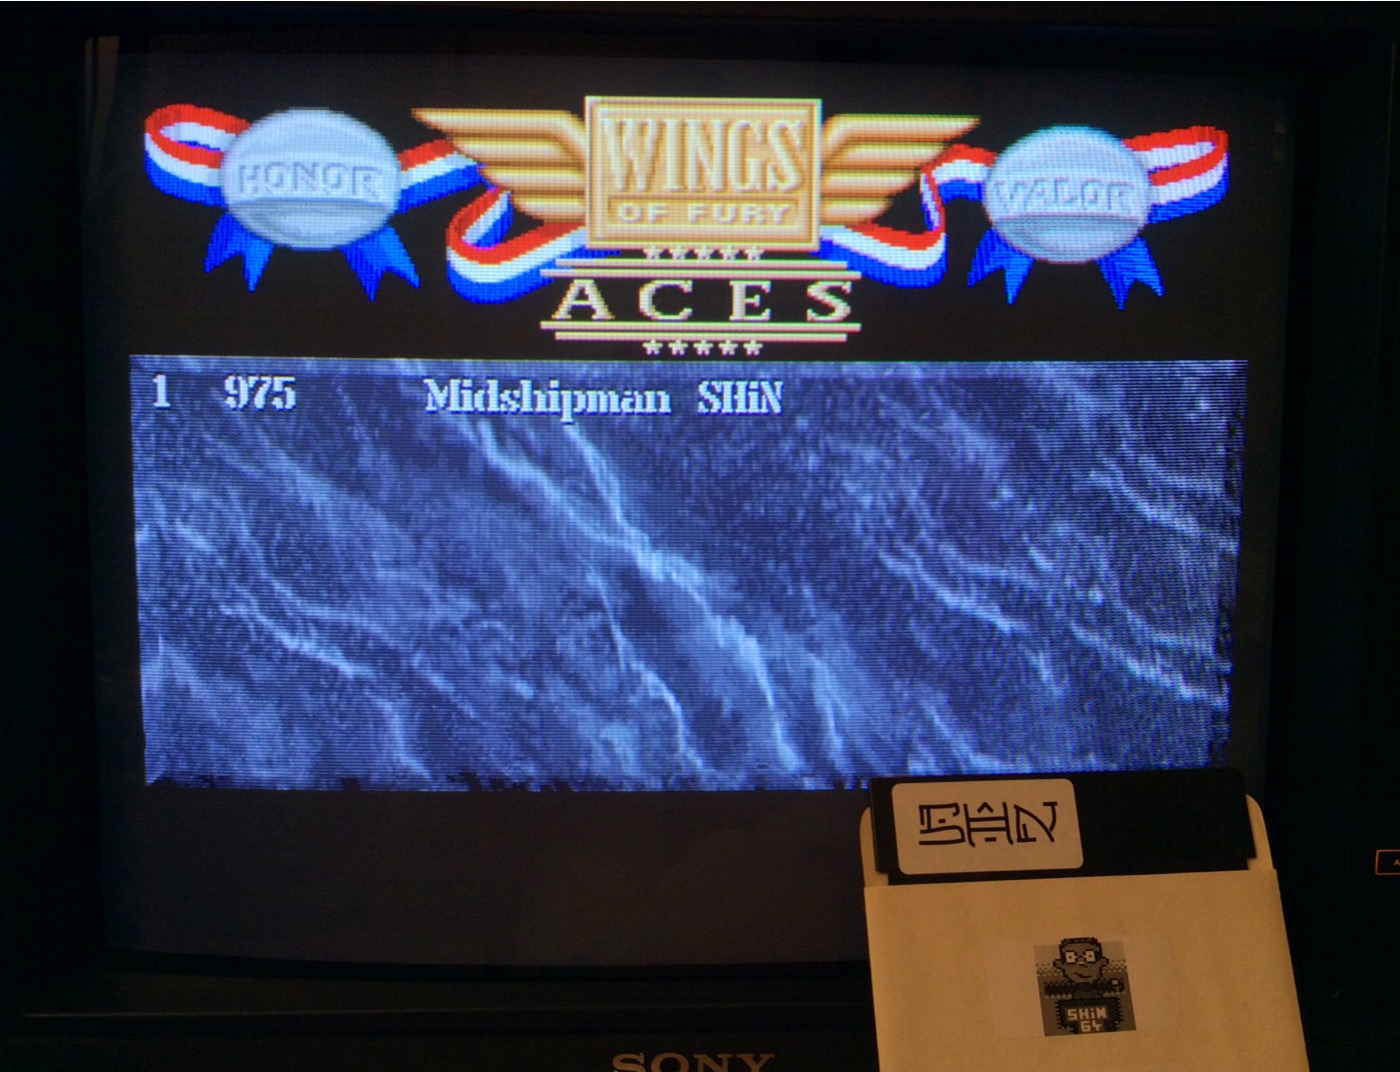 SHiNjide: Wings of Fury (Amiga) 975 points on 2014-09-23 11:39:44